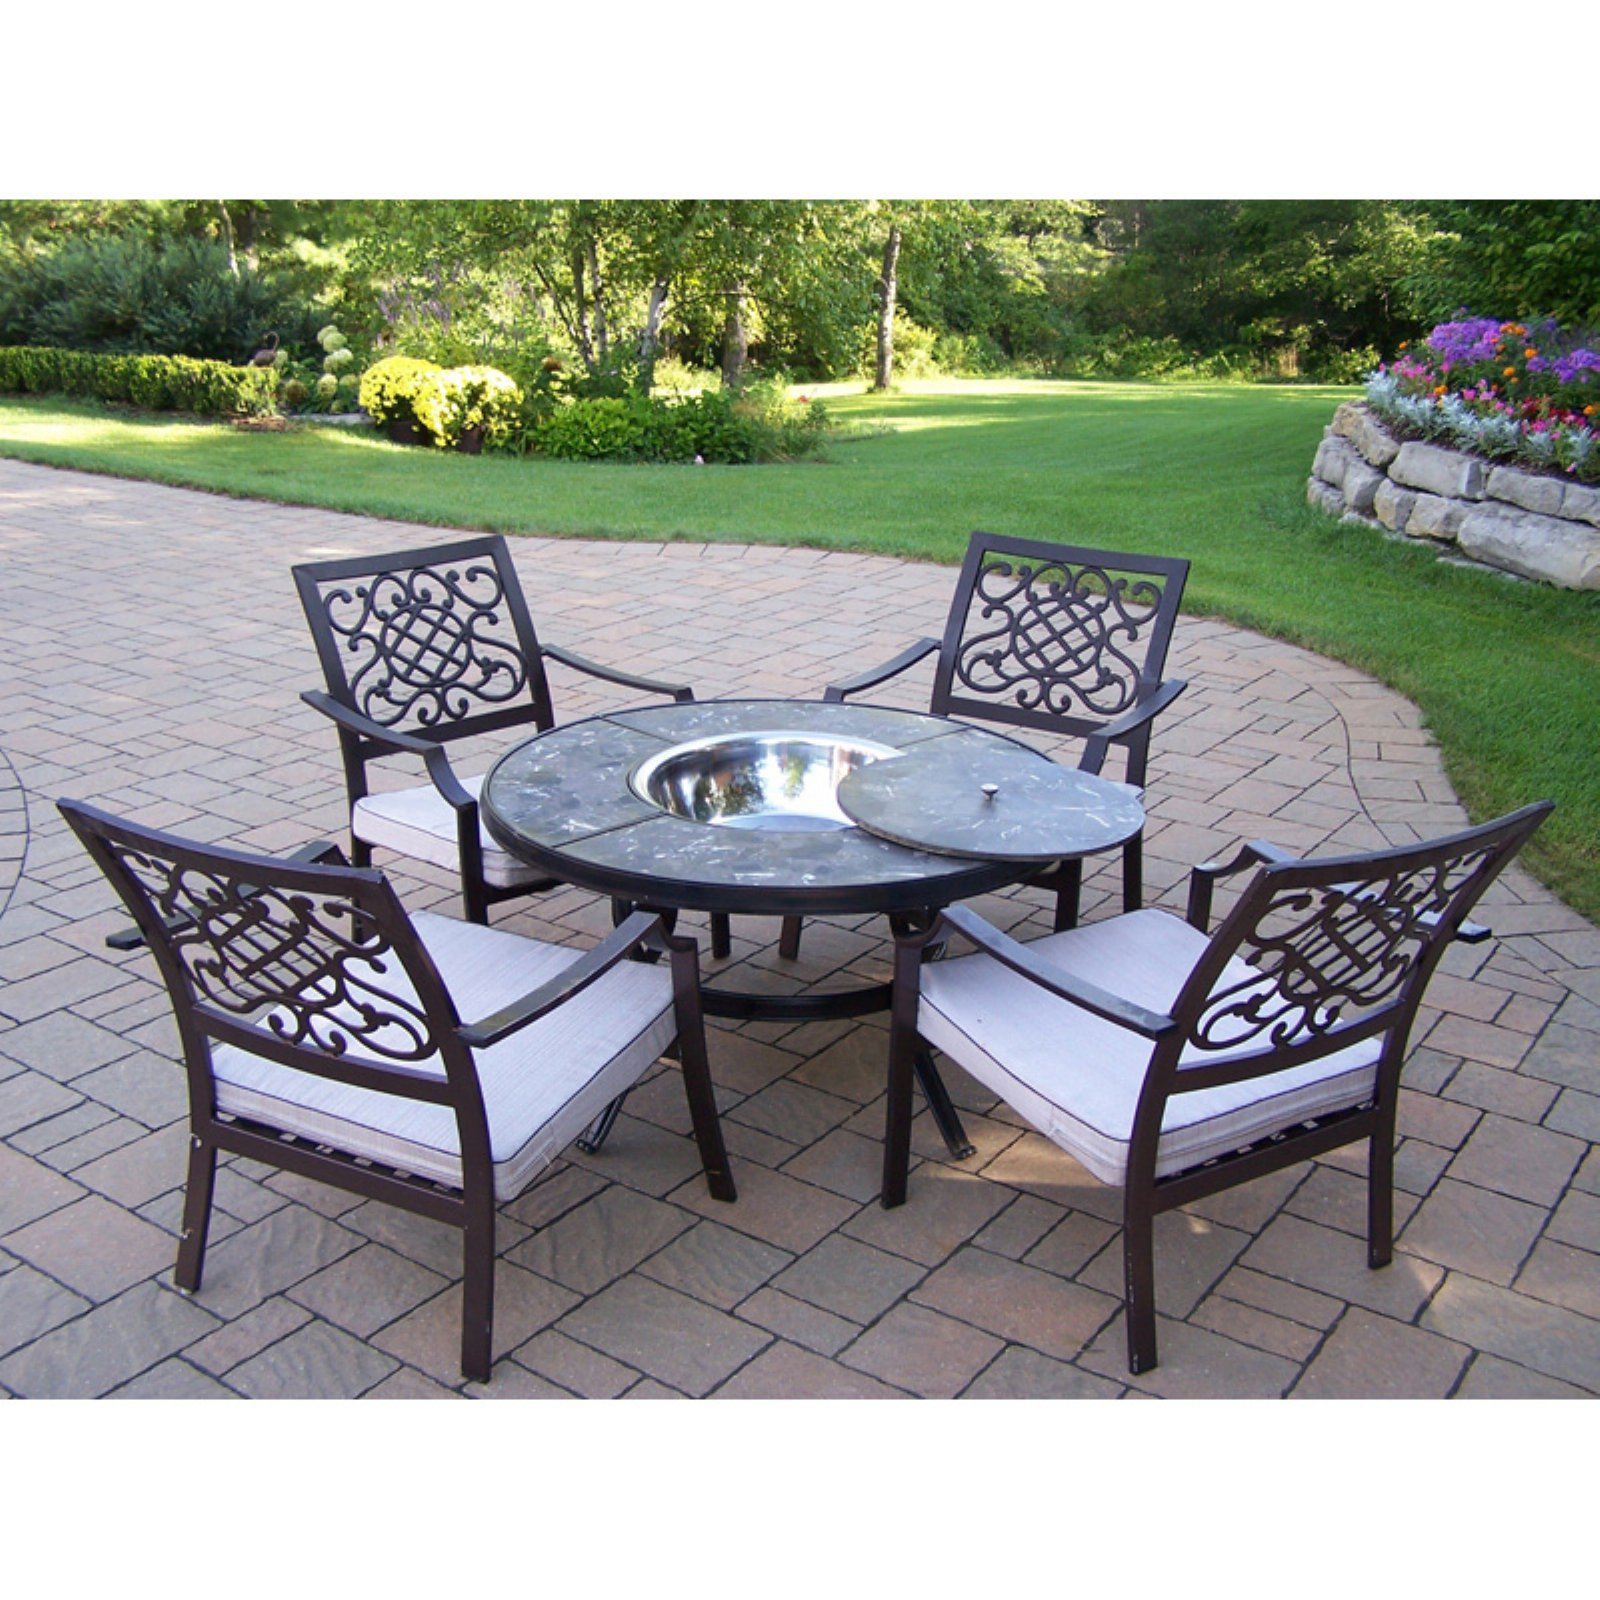 Oakland Living Stone Art 44 in. Deep Seating Chat Set